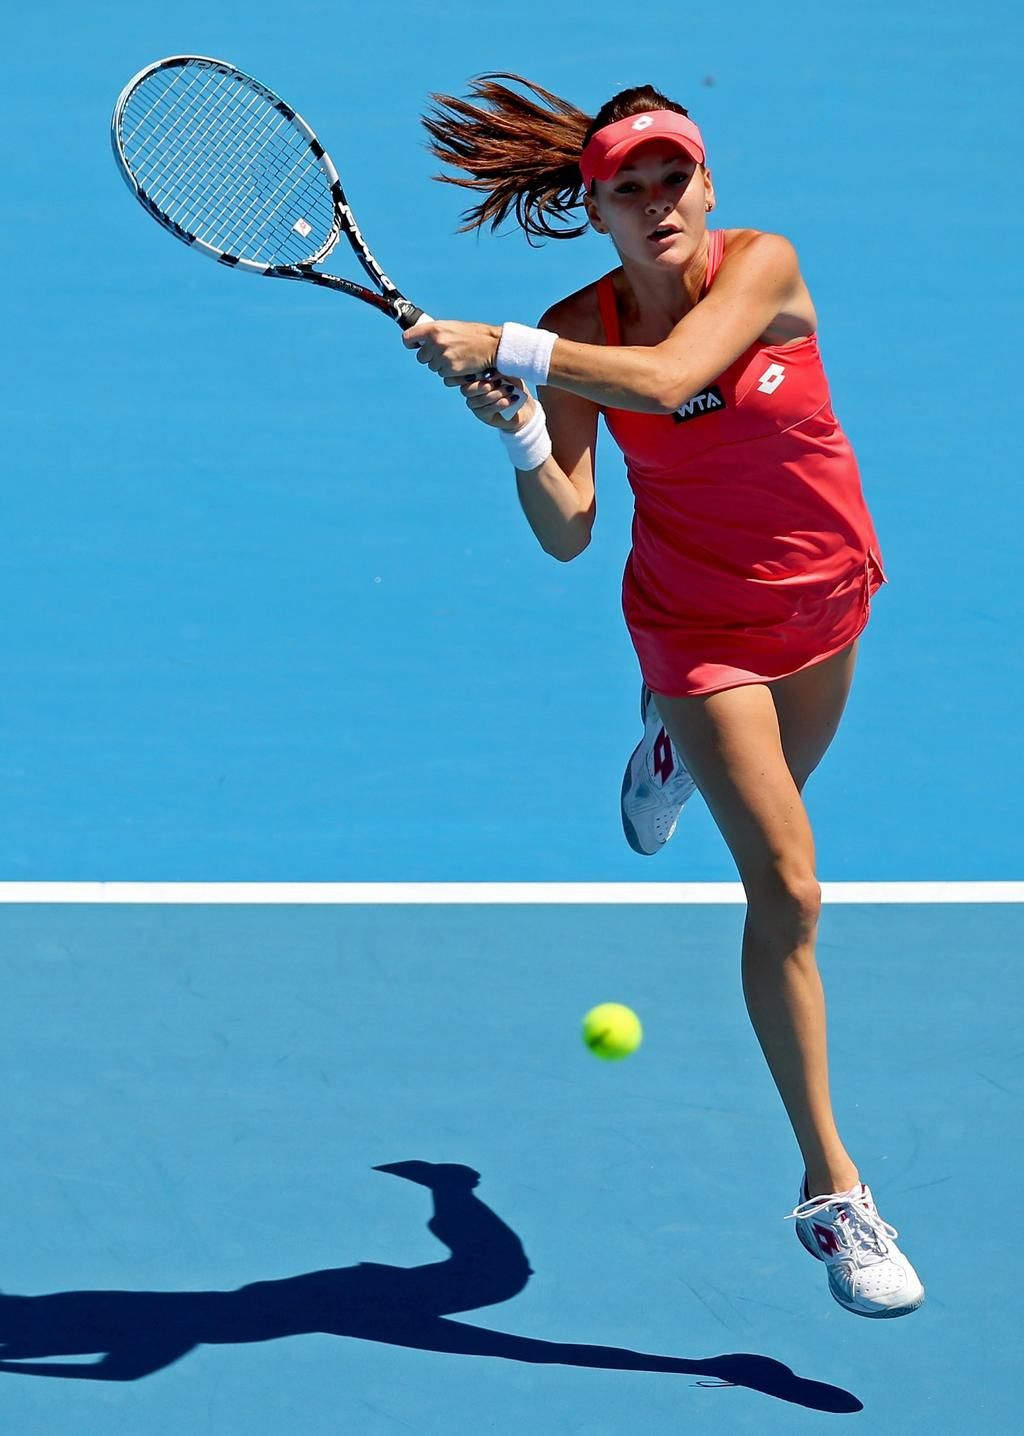 Radwanska wins the title over Wickmayer in Auckland to start the season.